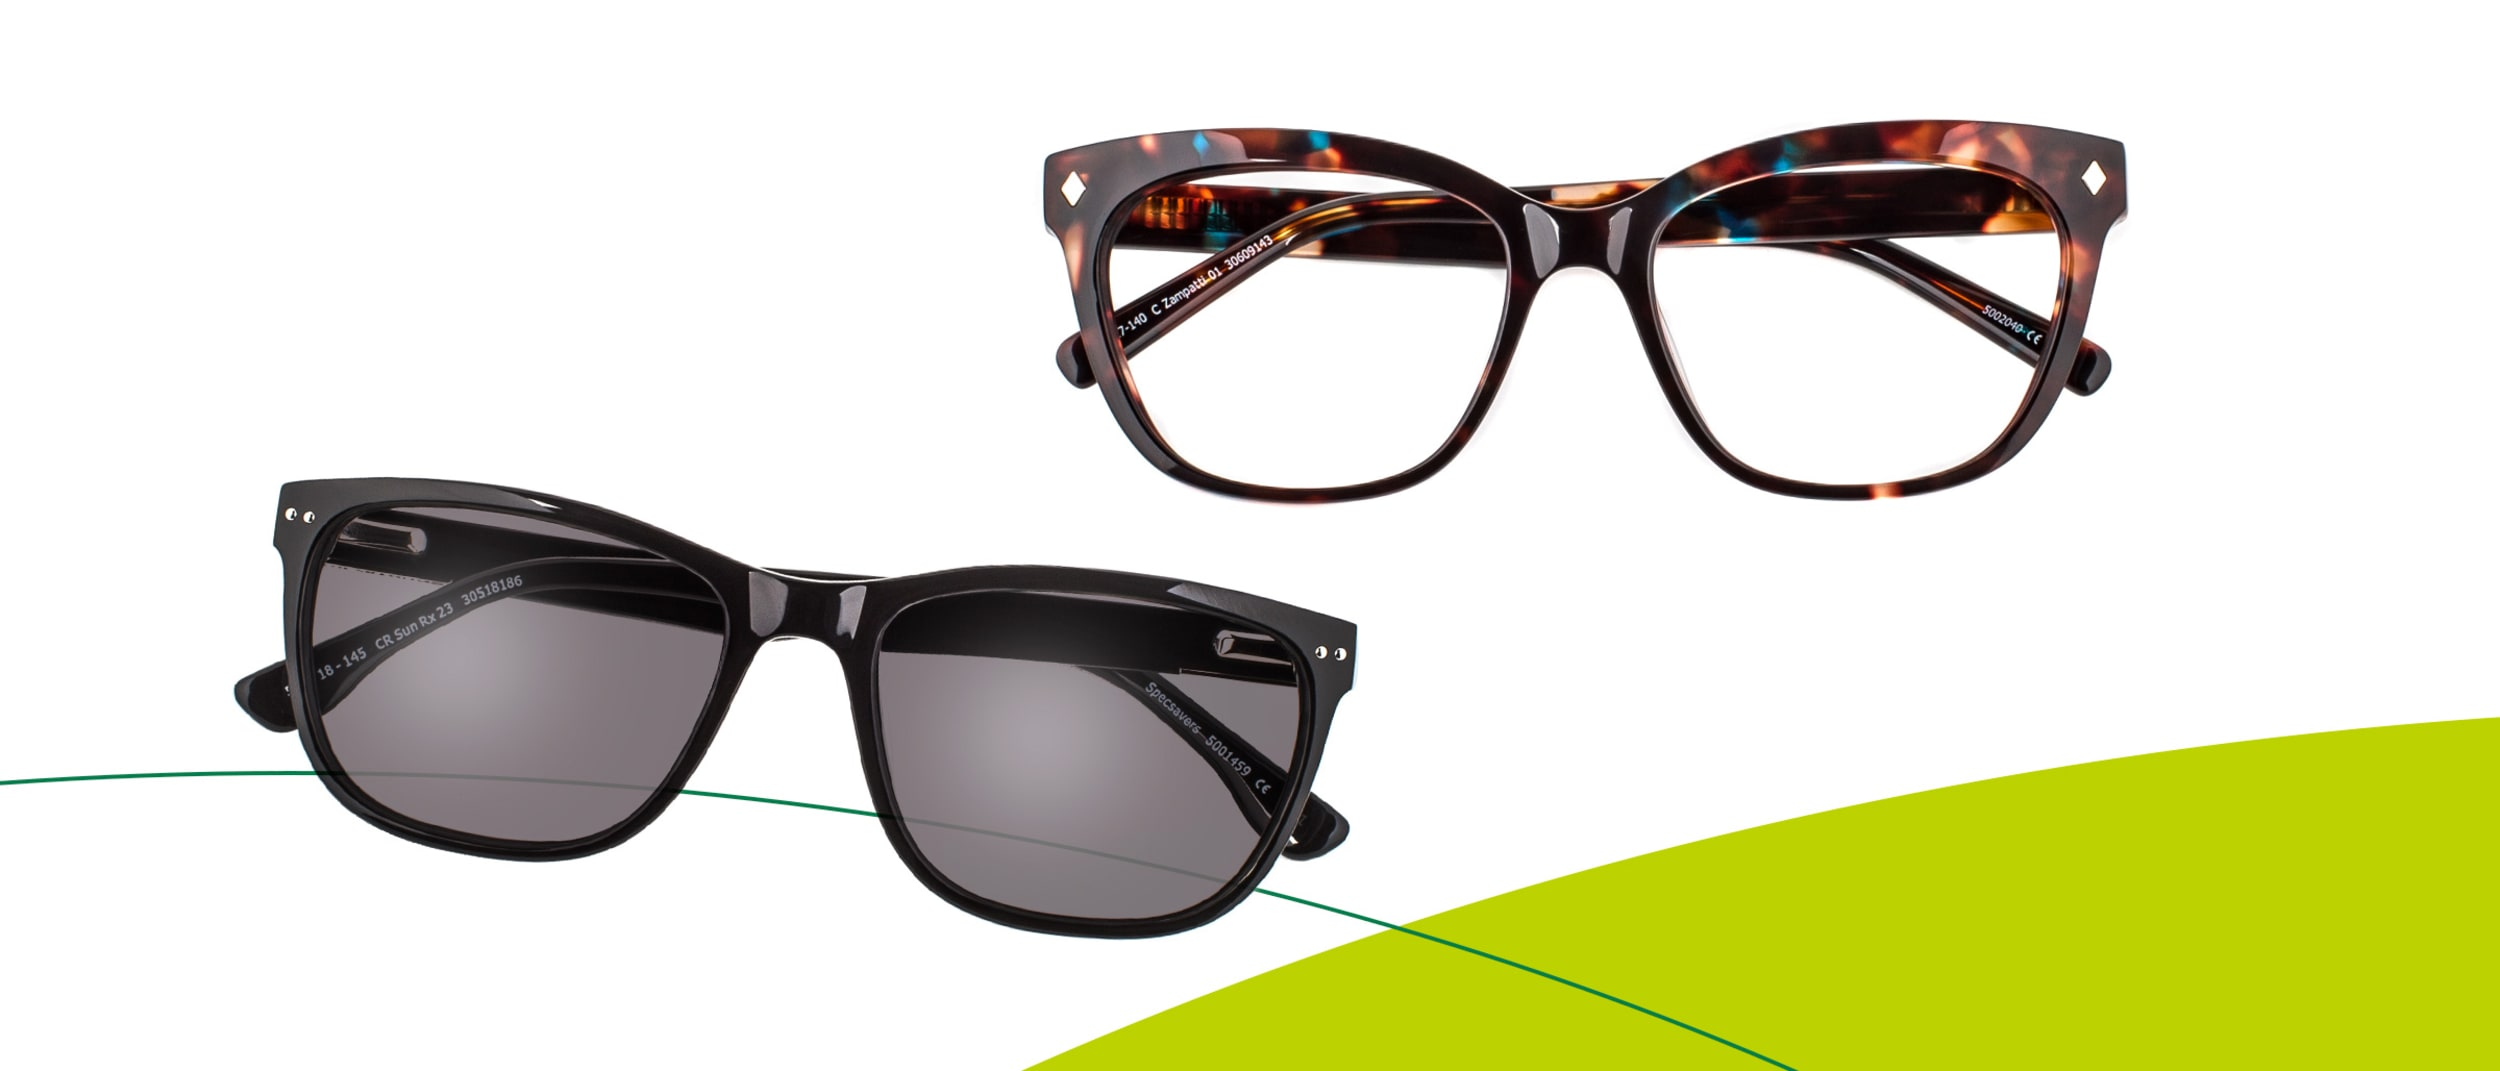 Specsavers: 2 styles, for no or low out of pocket expense